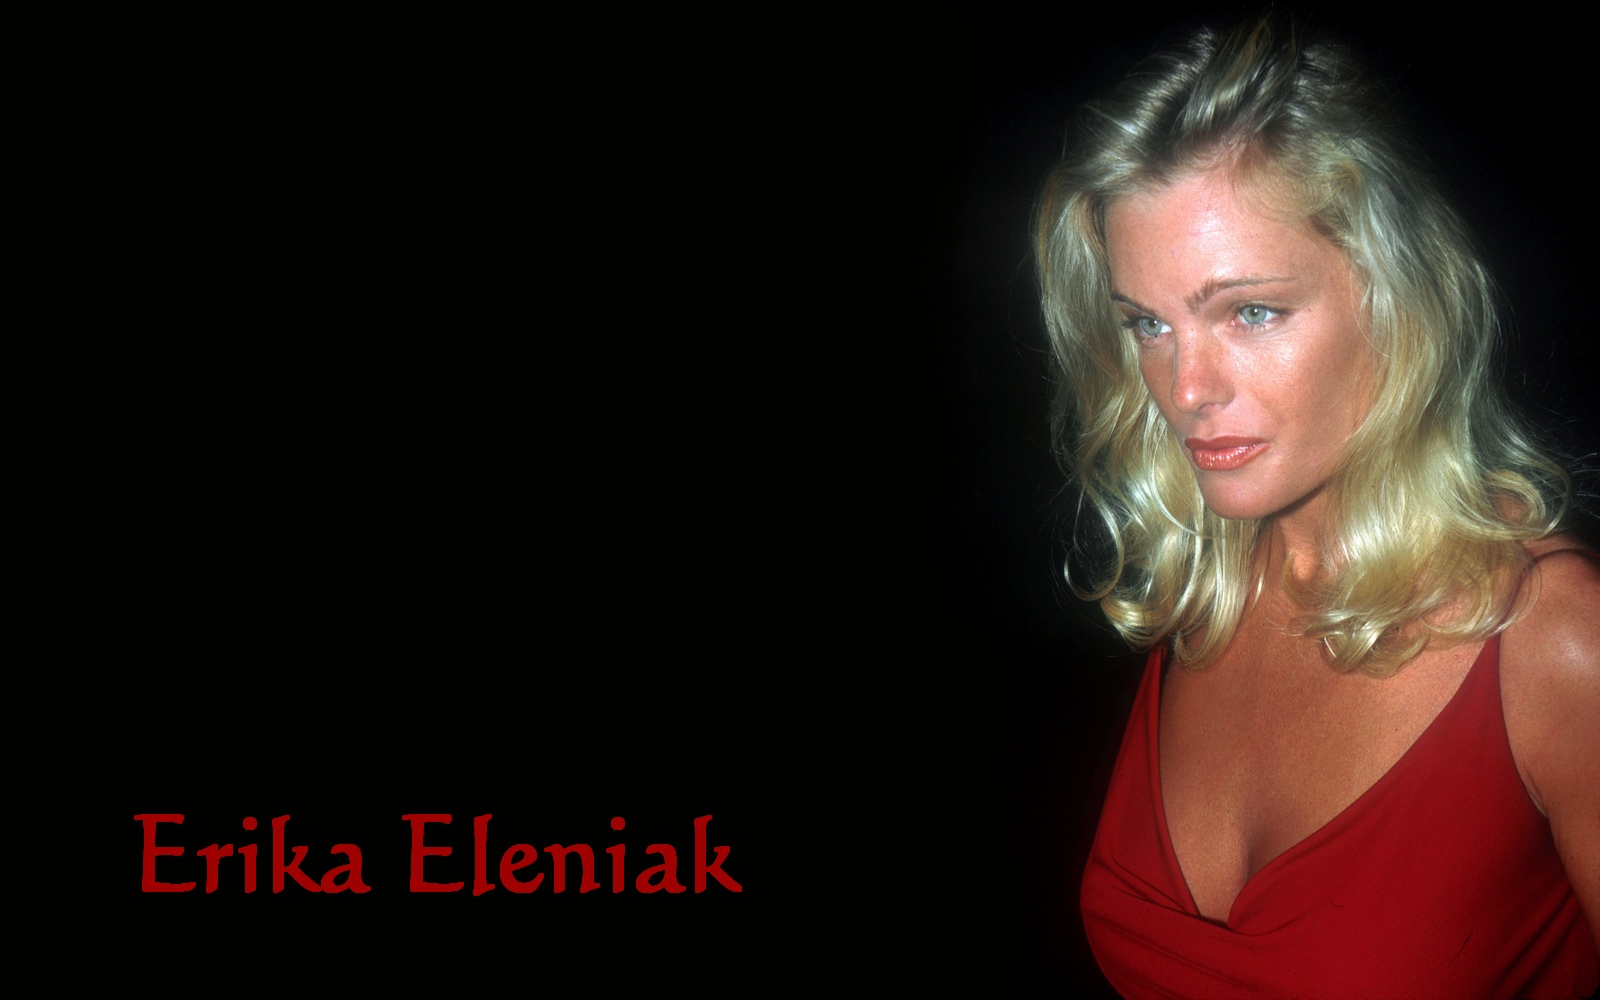 erika eleniak second to die submited images